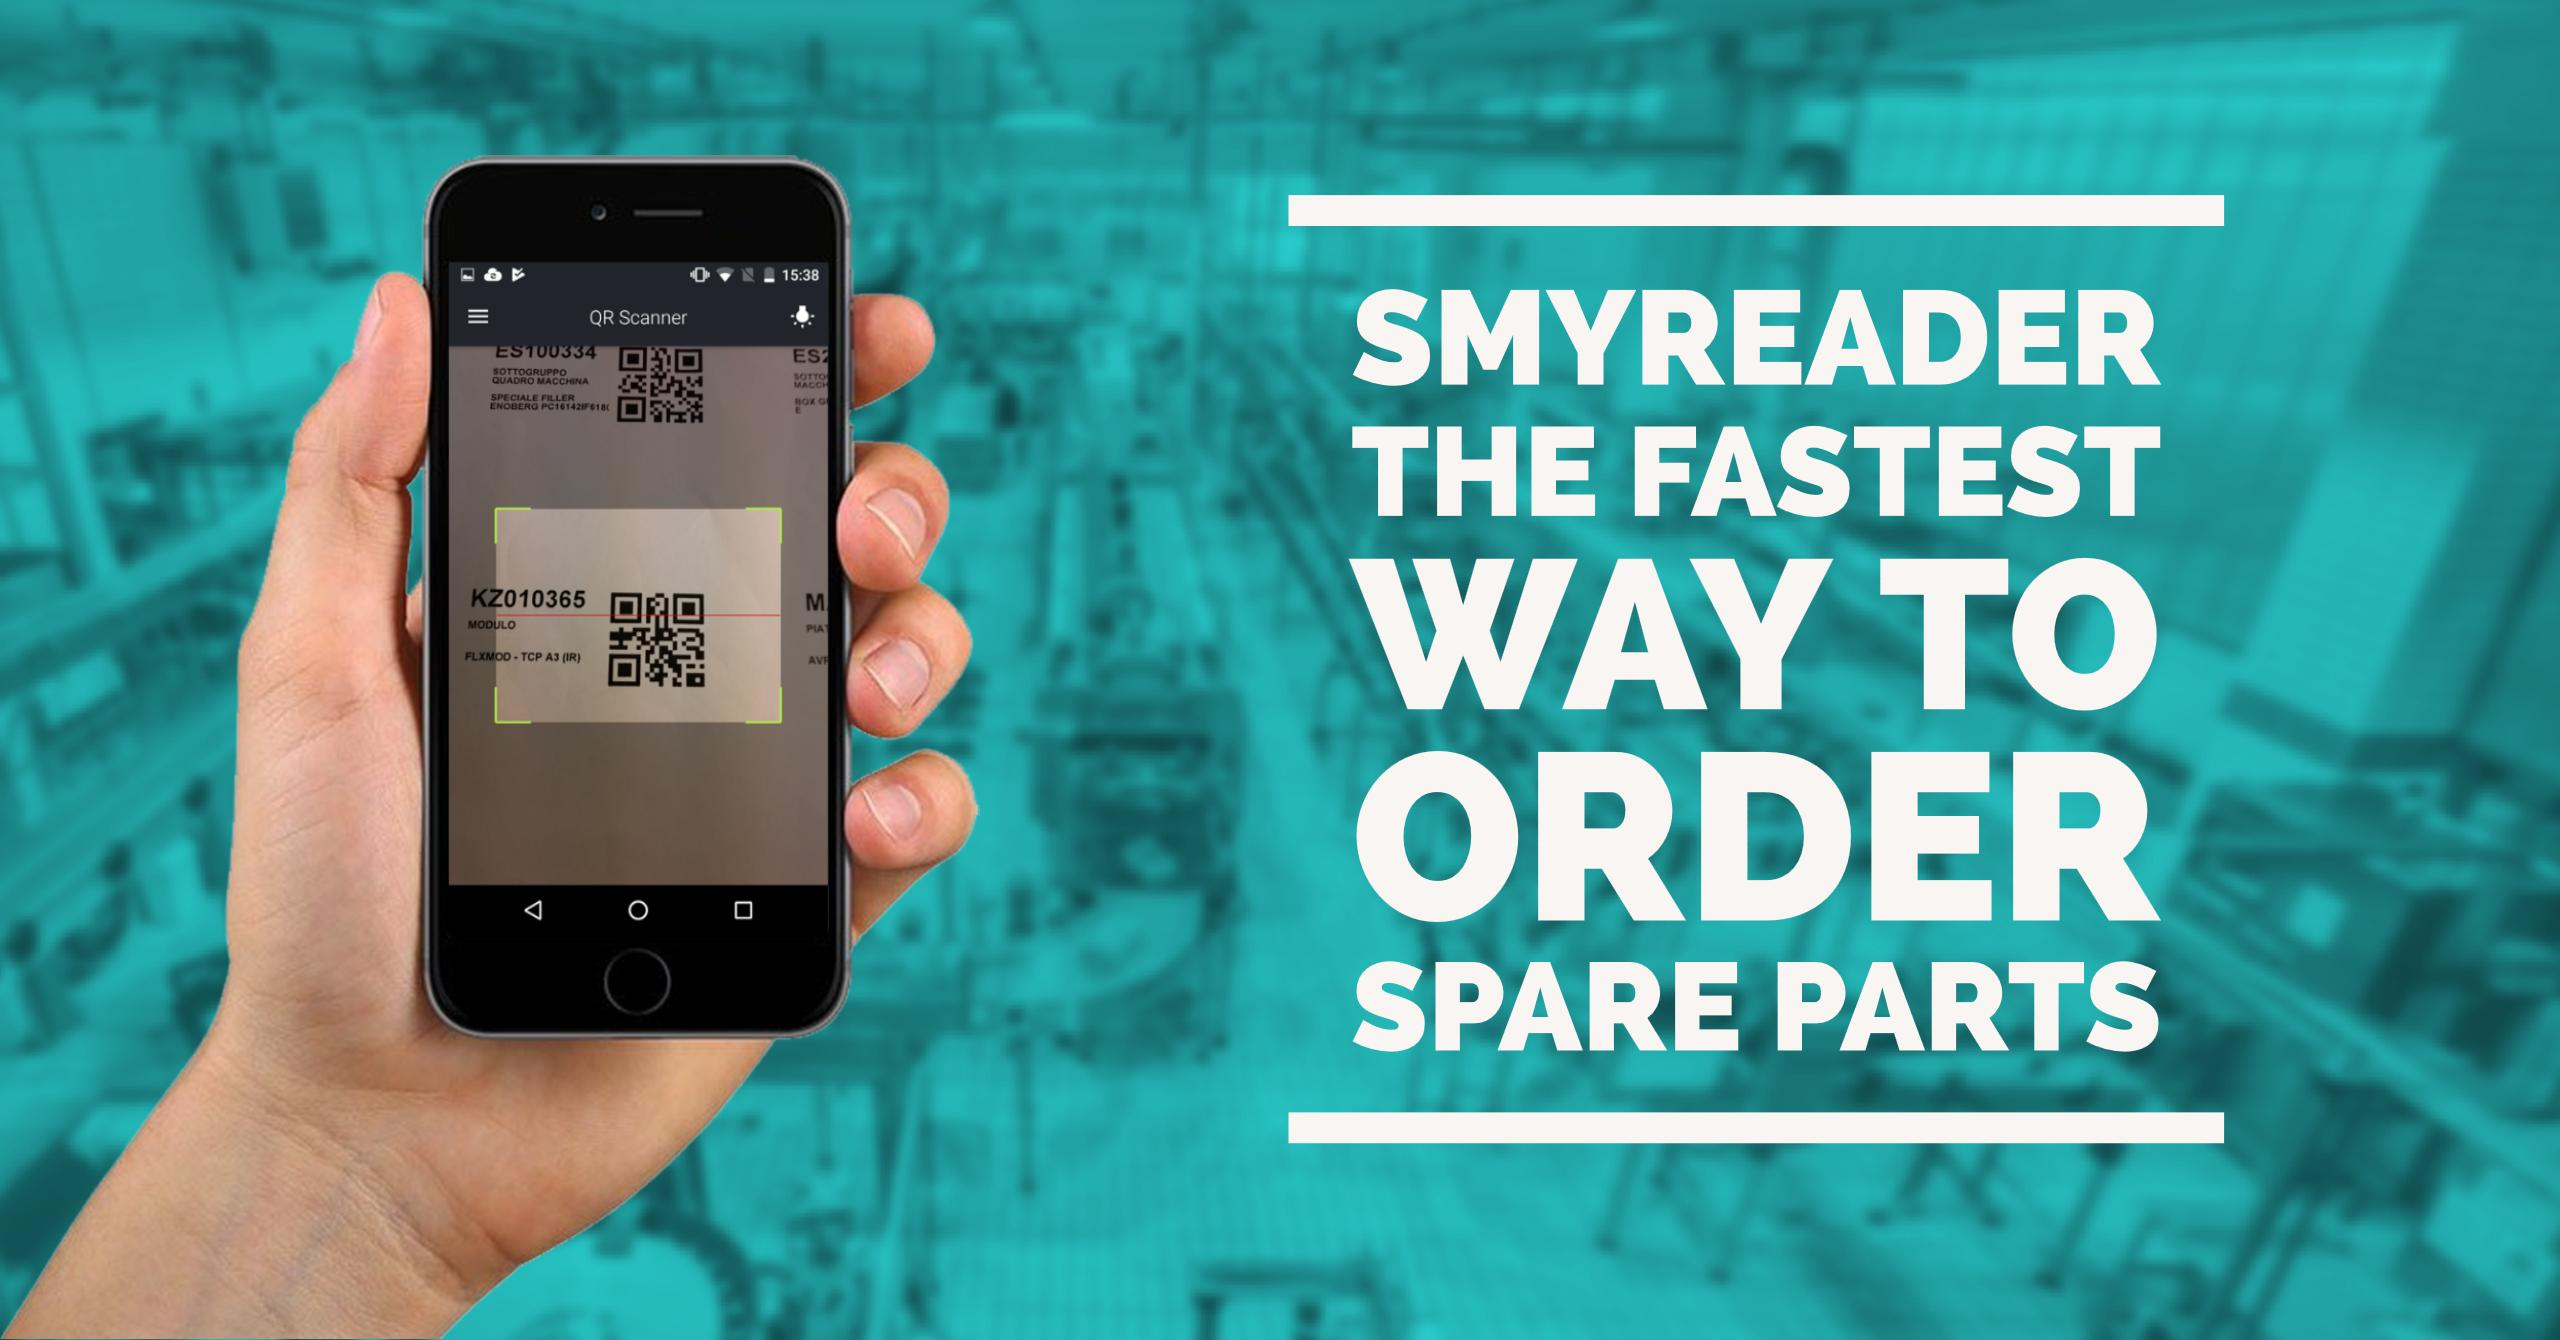 SmyReader. The fastest way to order spare parts